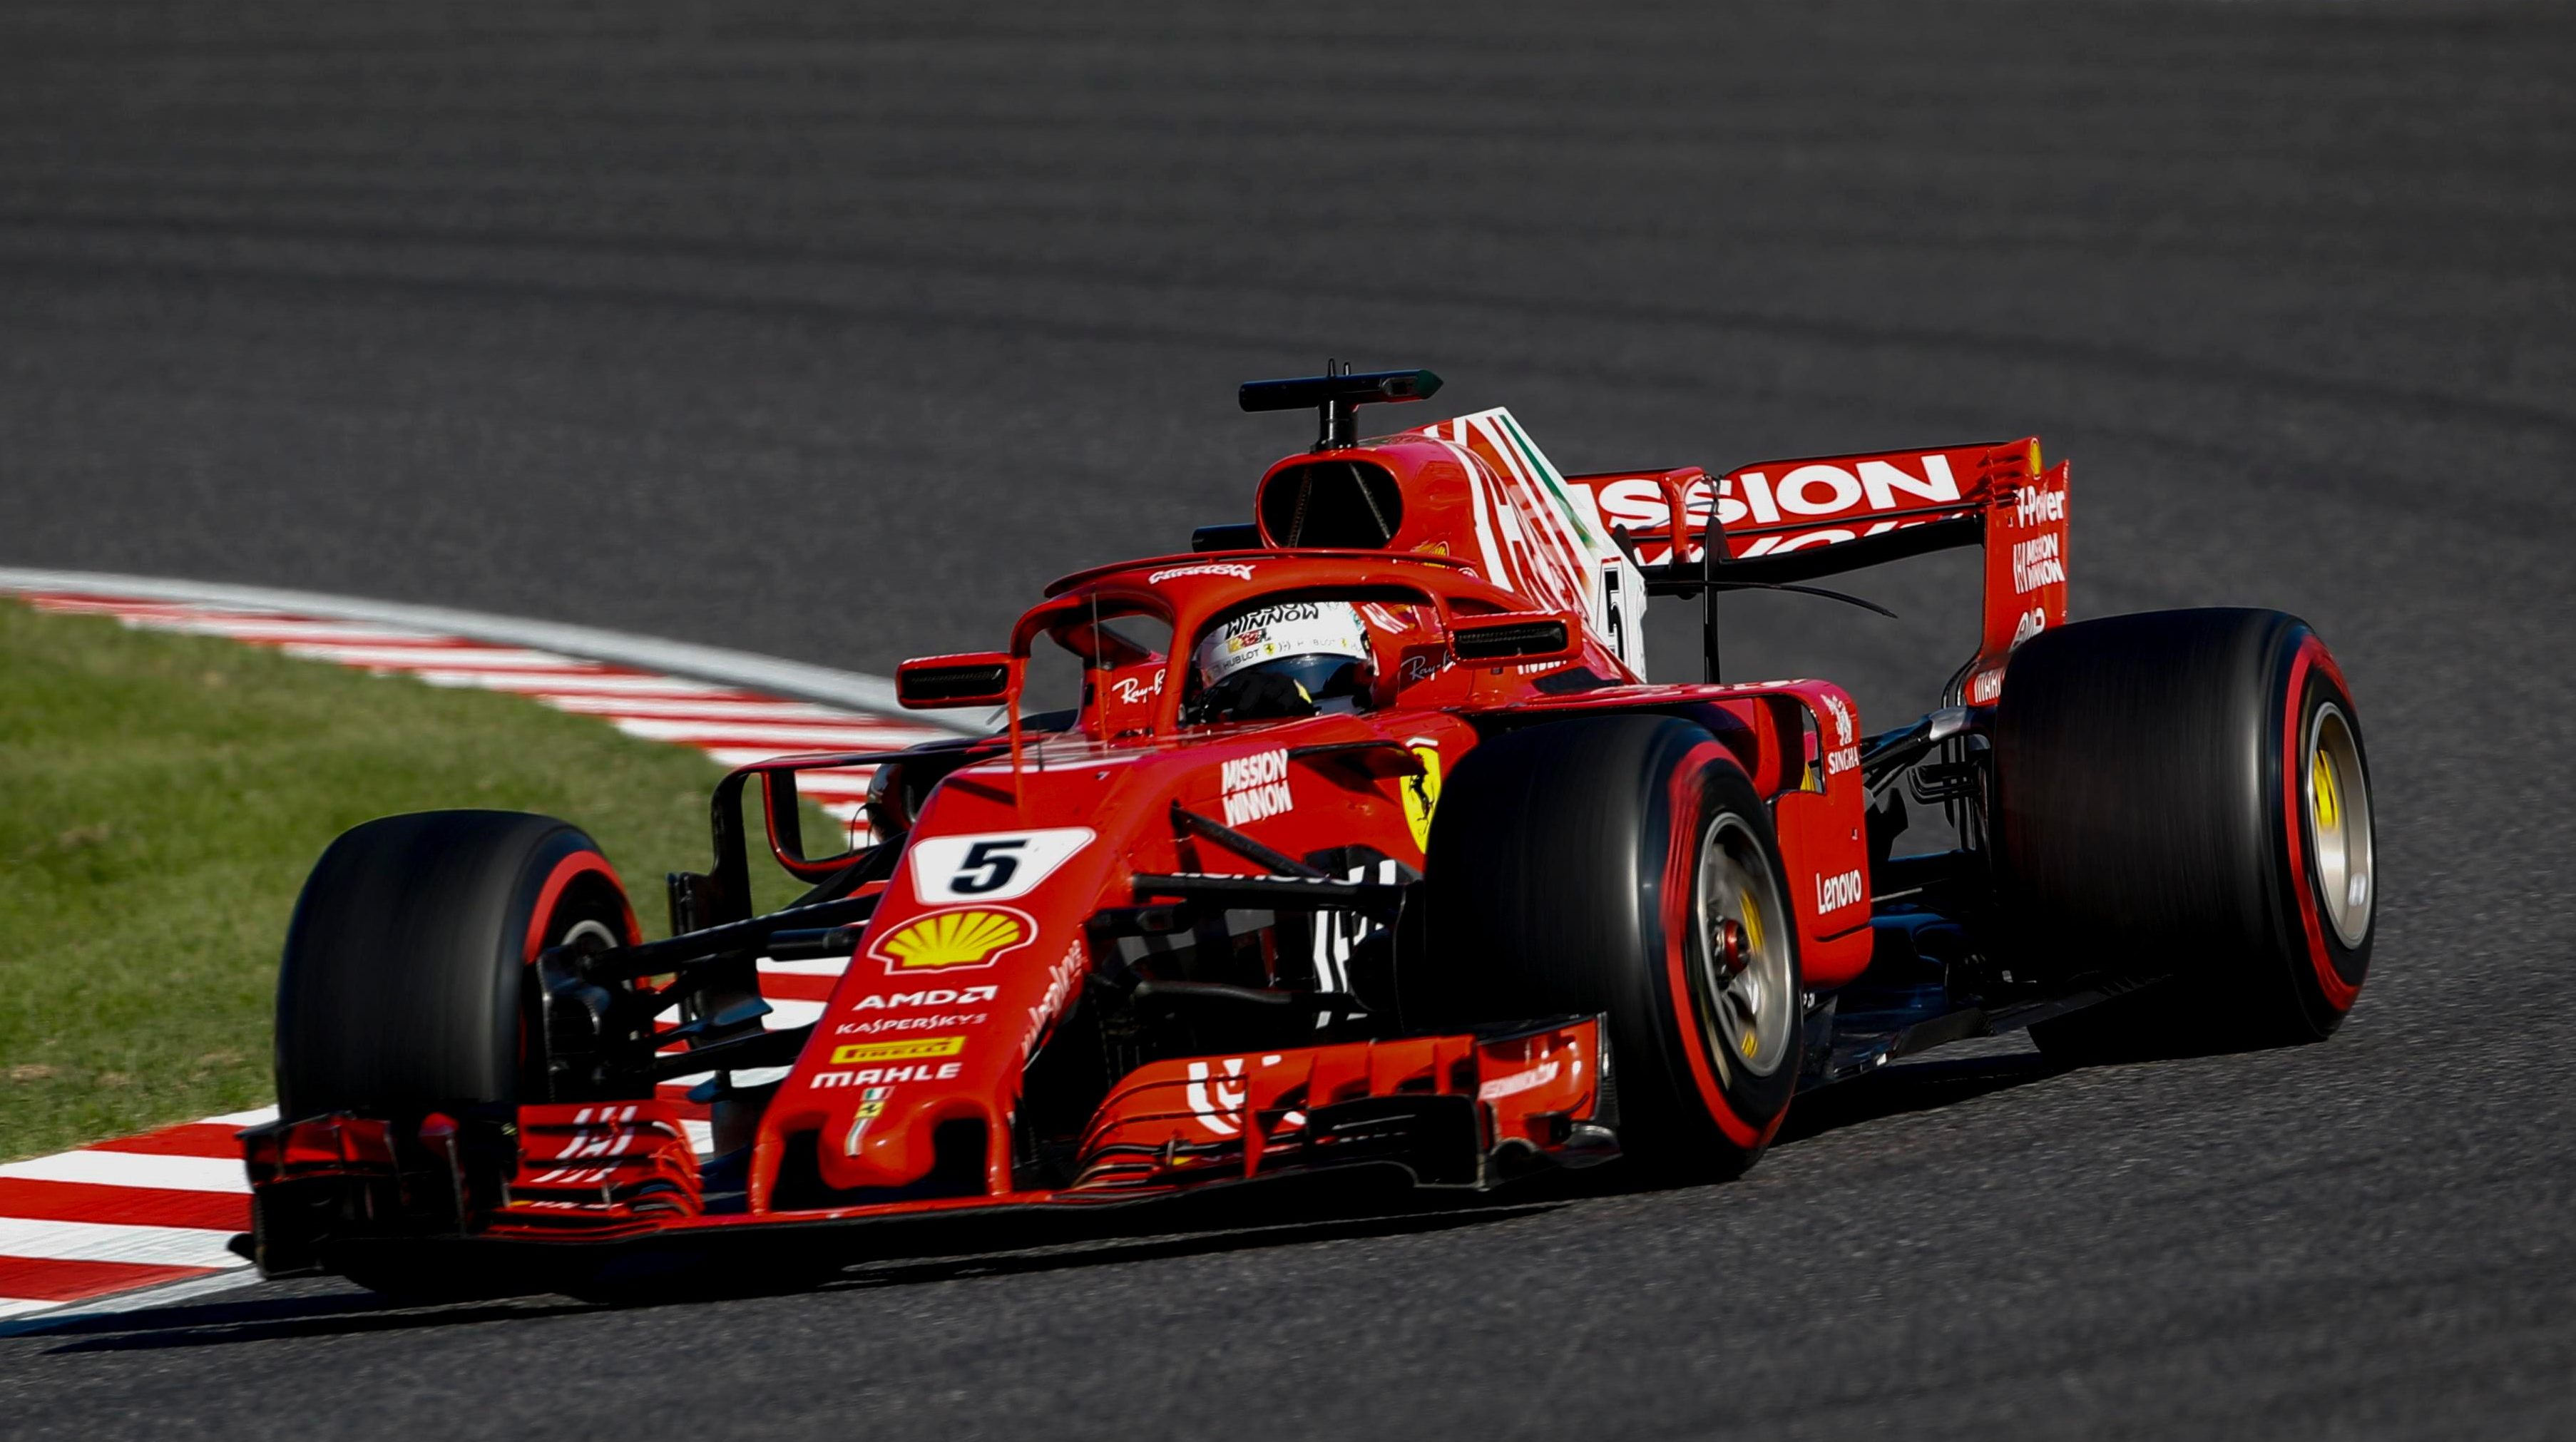 German star Sebastian Vettel drove himself into more trouble, this time in Japan, leading to criticism from Jacques Villeneuve